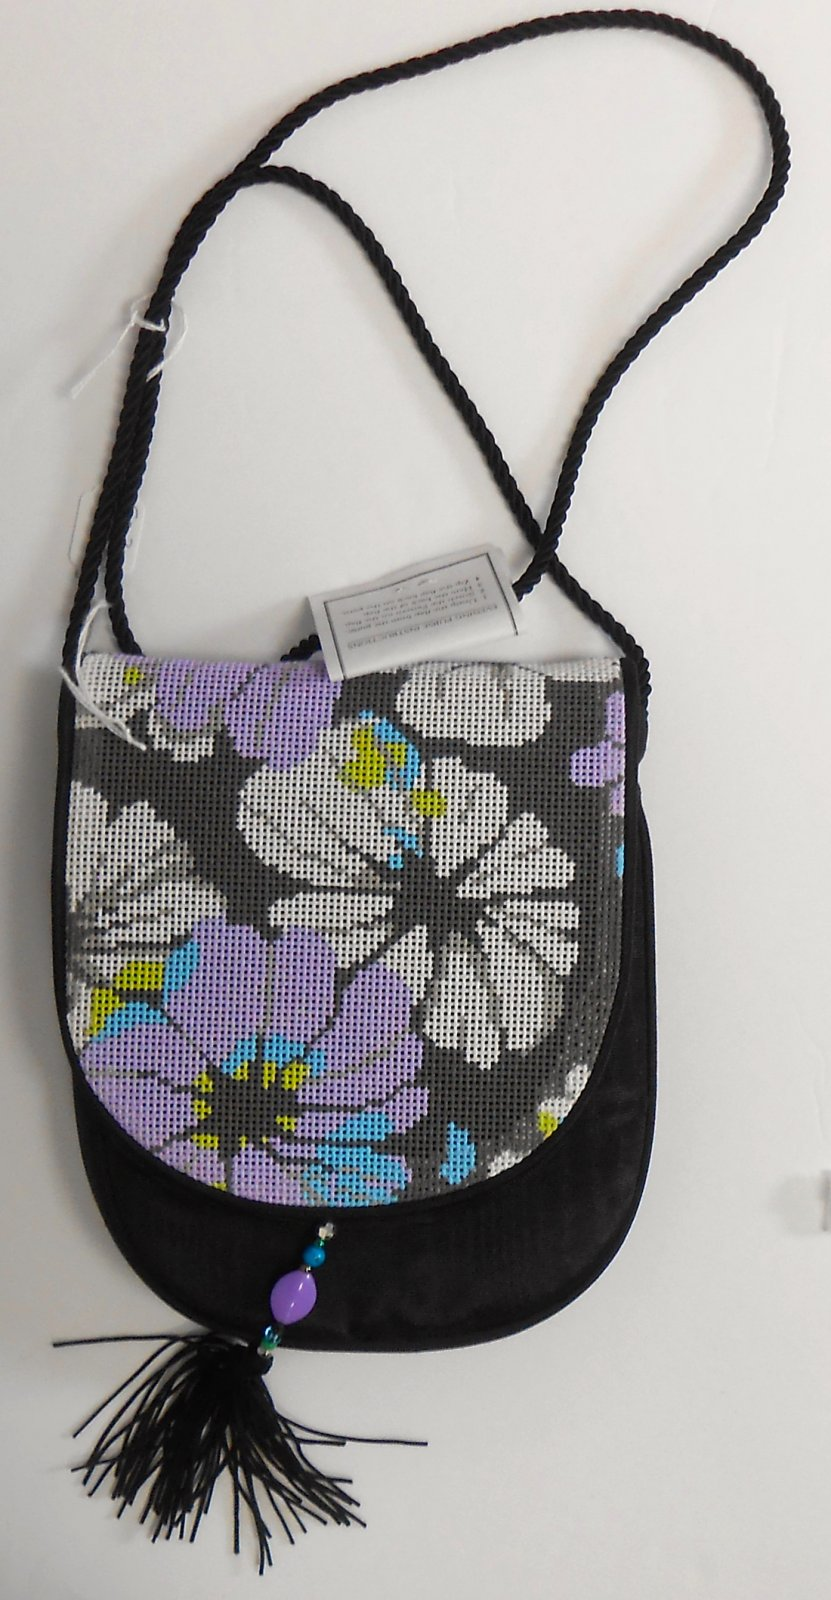 Rhapsody (purple & White flowers) Purse Flap